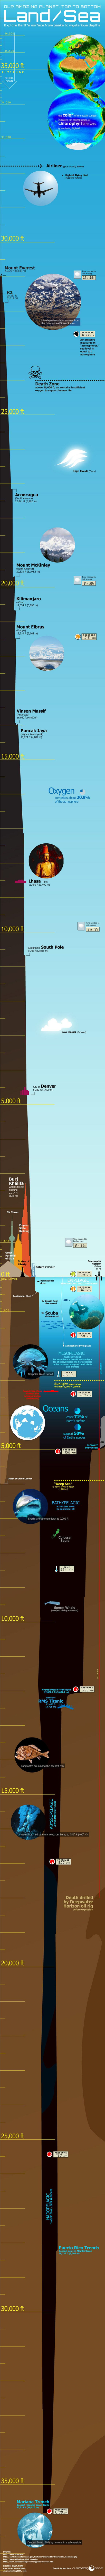 #Infographic: Tallest Mountain to Deepest Ocean Trench